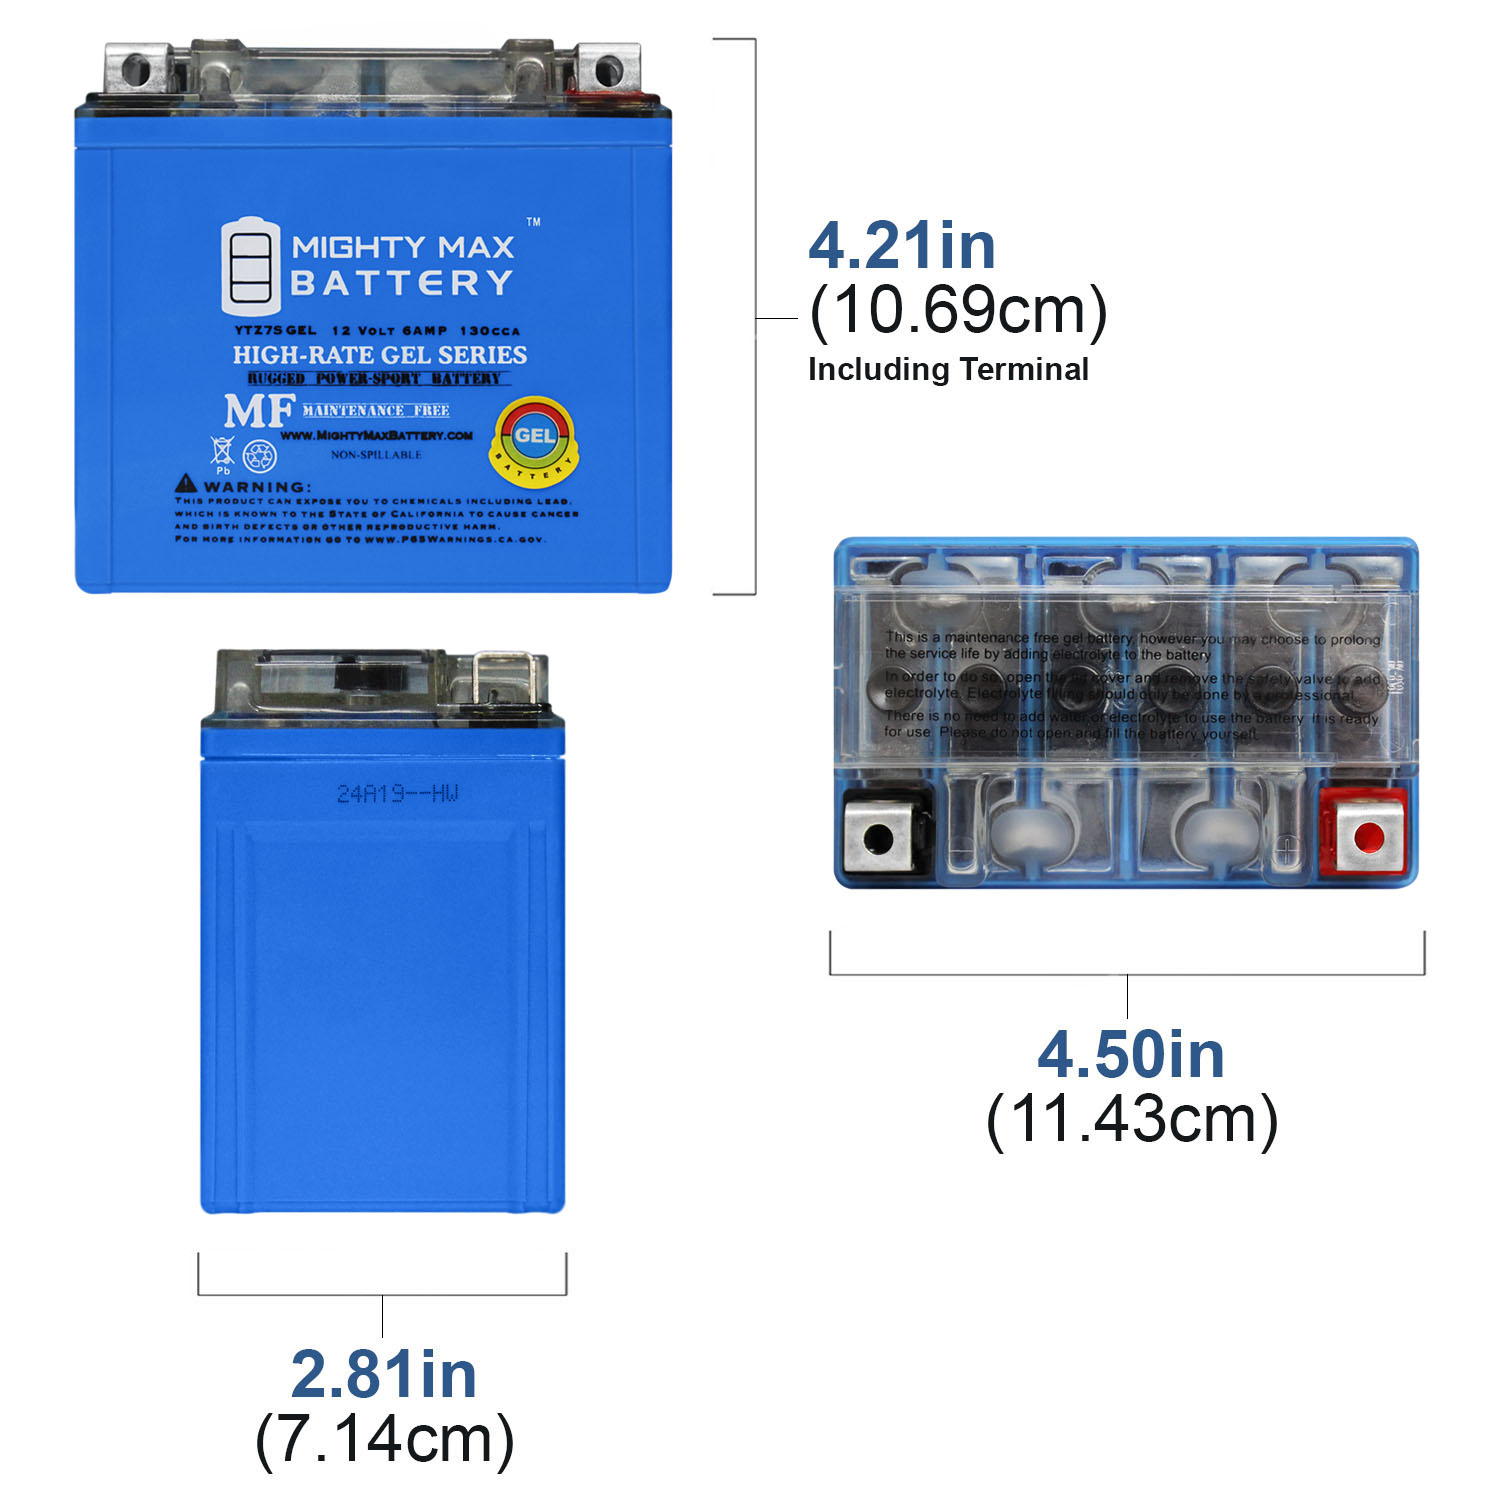 MMG3 YTZ7S Lithium Ion Sealed Powersports Battery 12V Powerful 150CCA No spills Factory Activated Ready to Use for Motorcycles Scooters ATVs